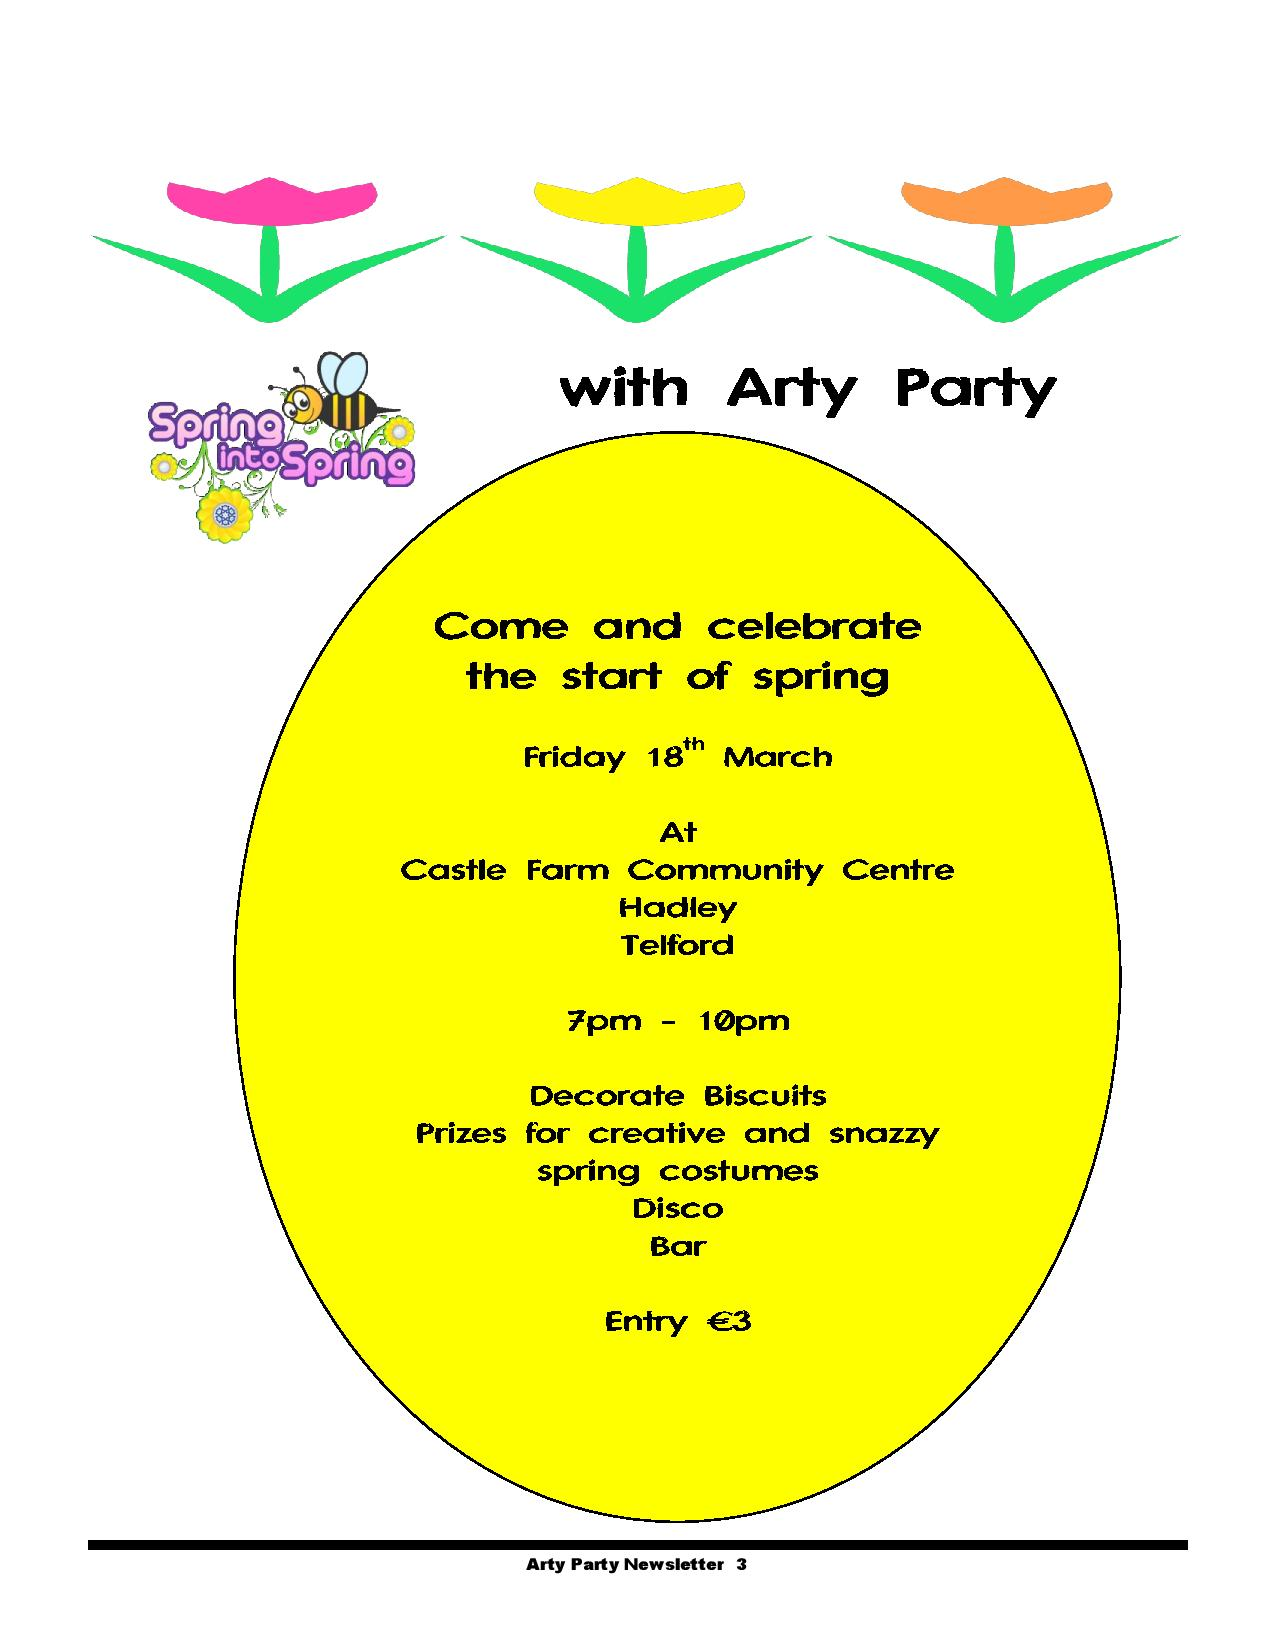 Arty Party Newsletter February 2016-page-003